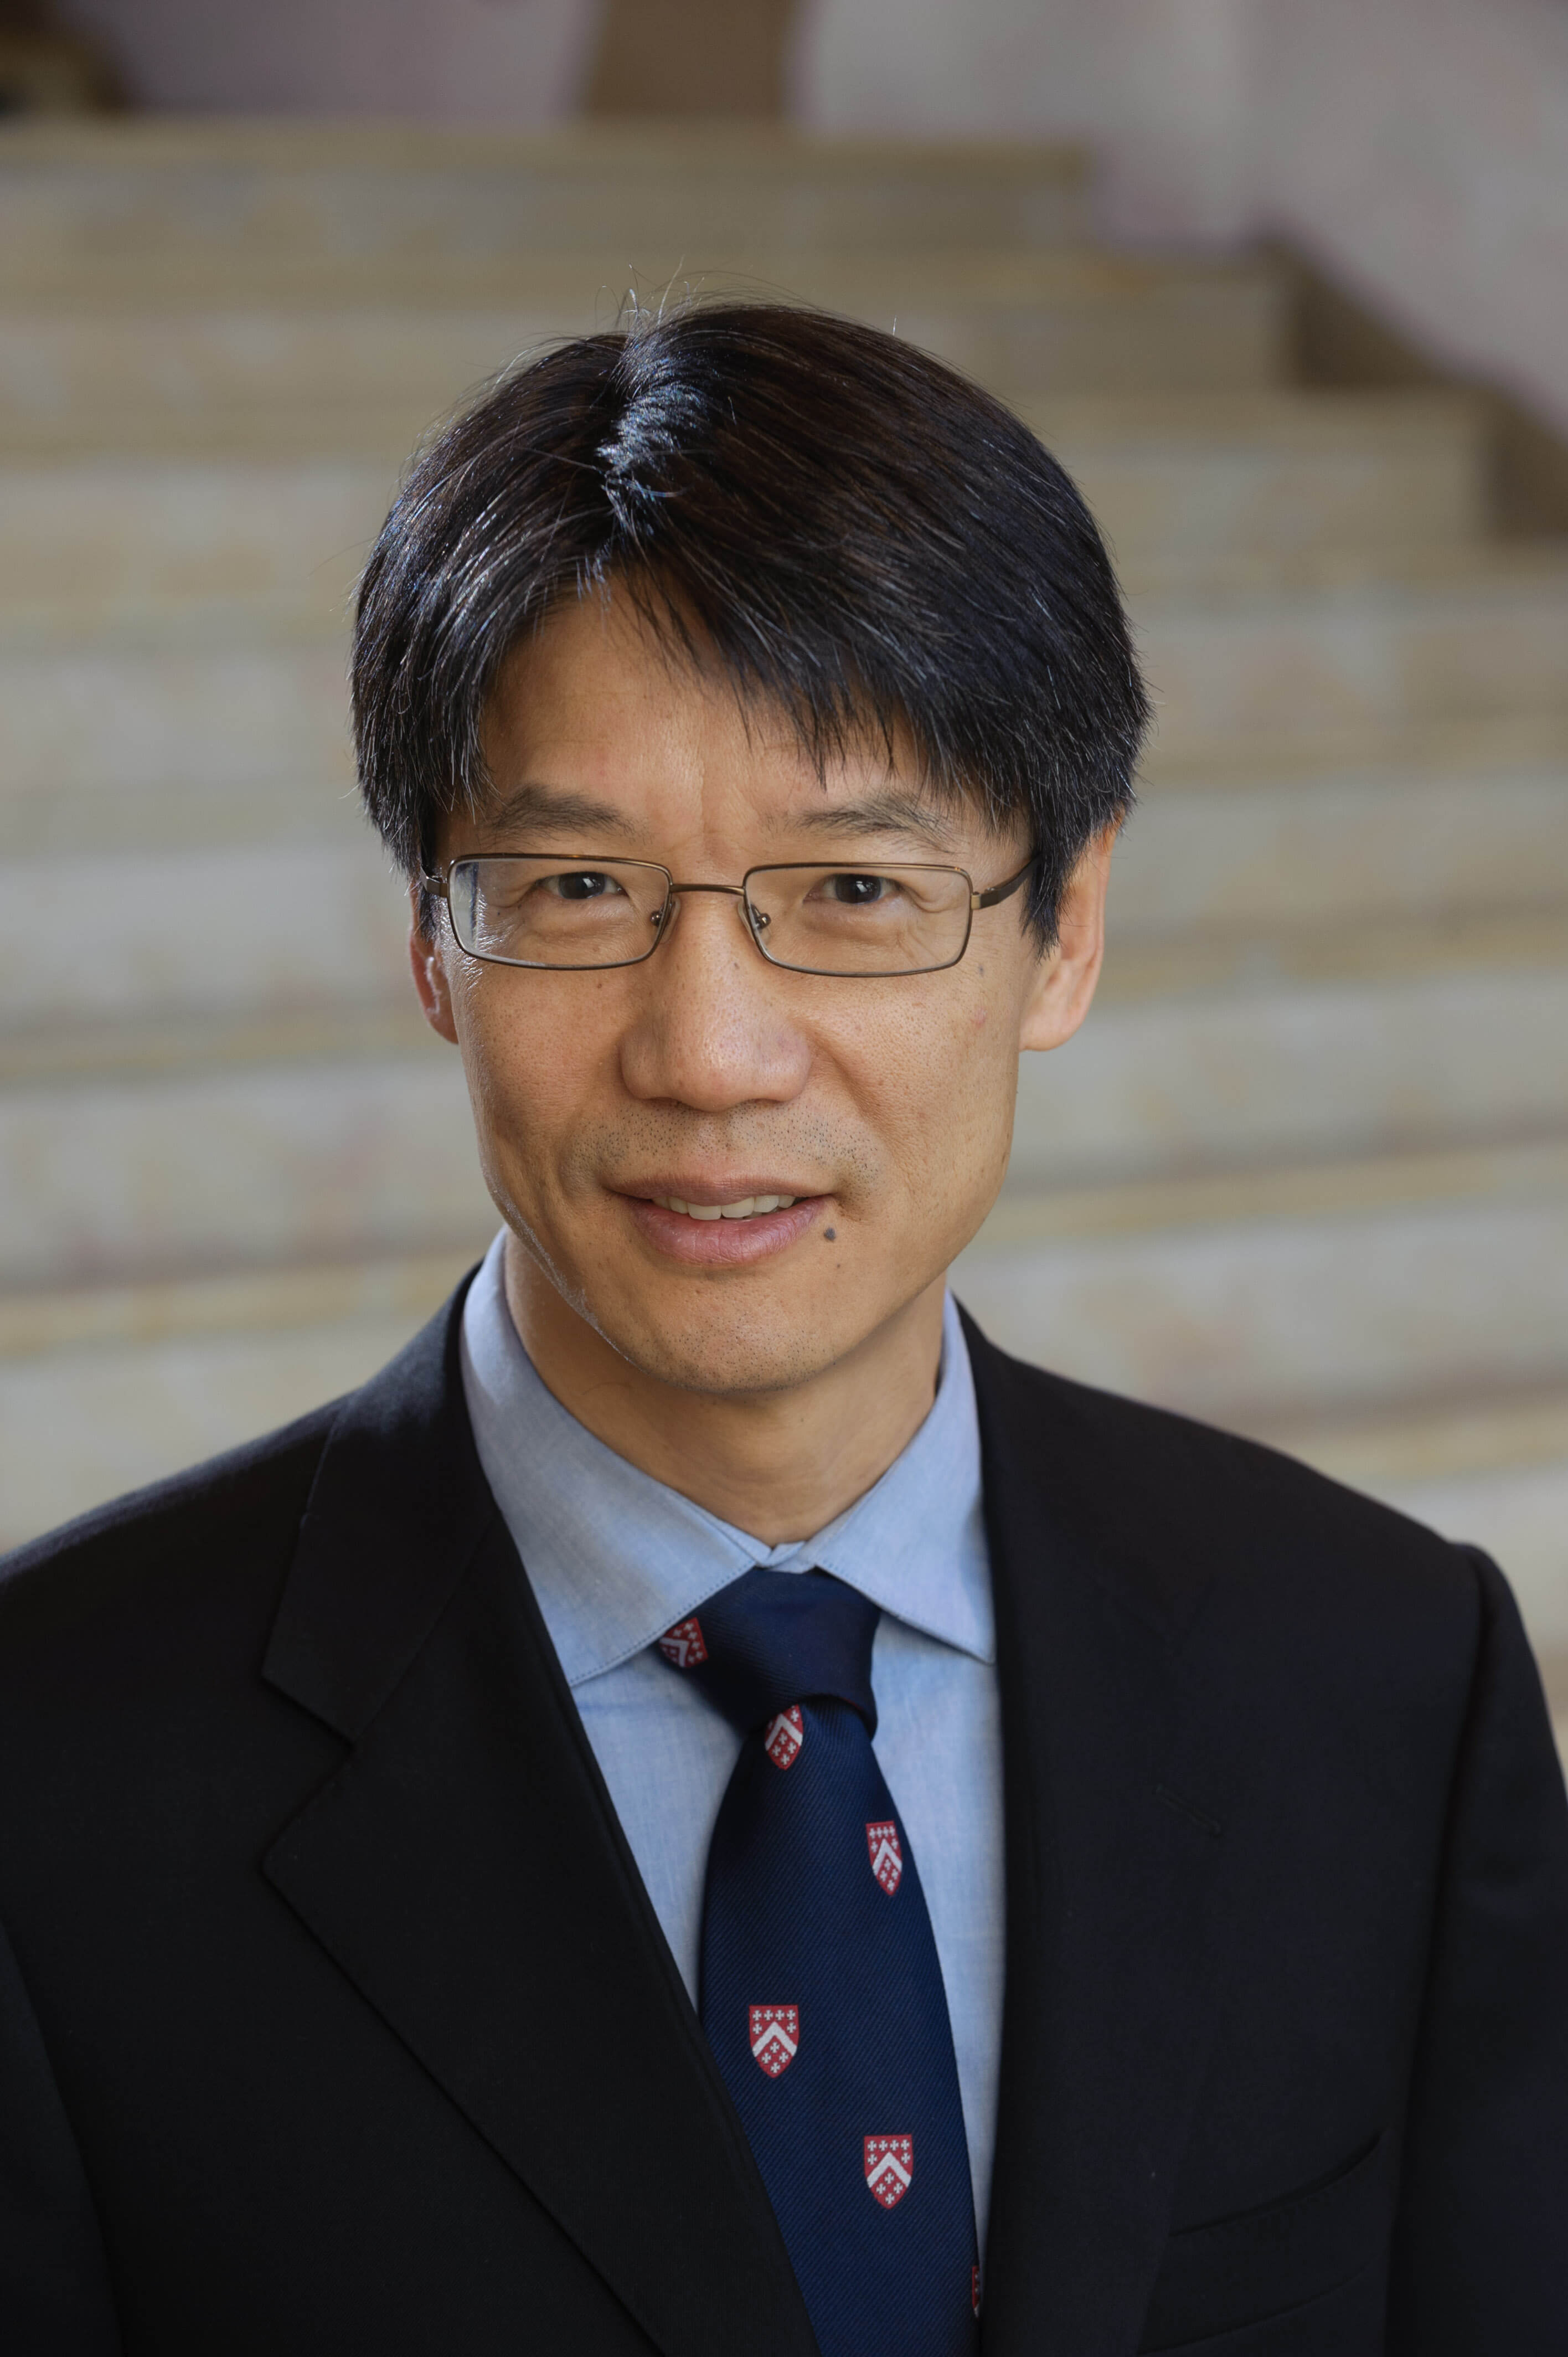 Xiao-Jing Wang, Ph.D.